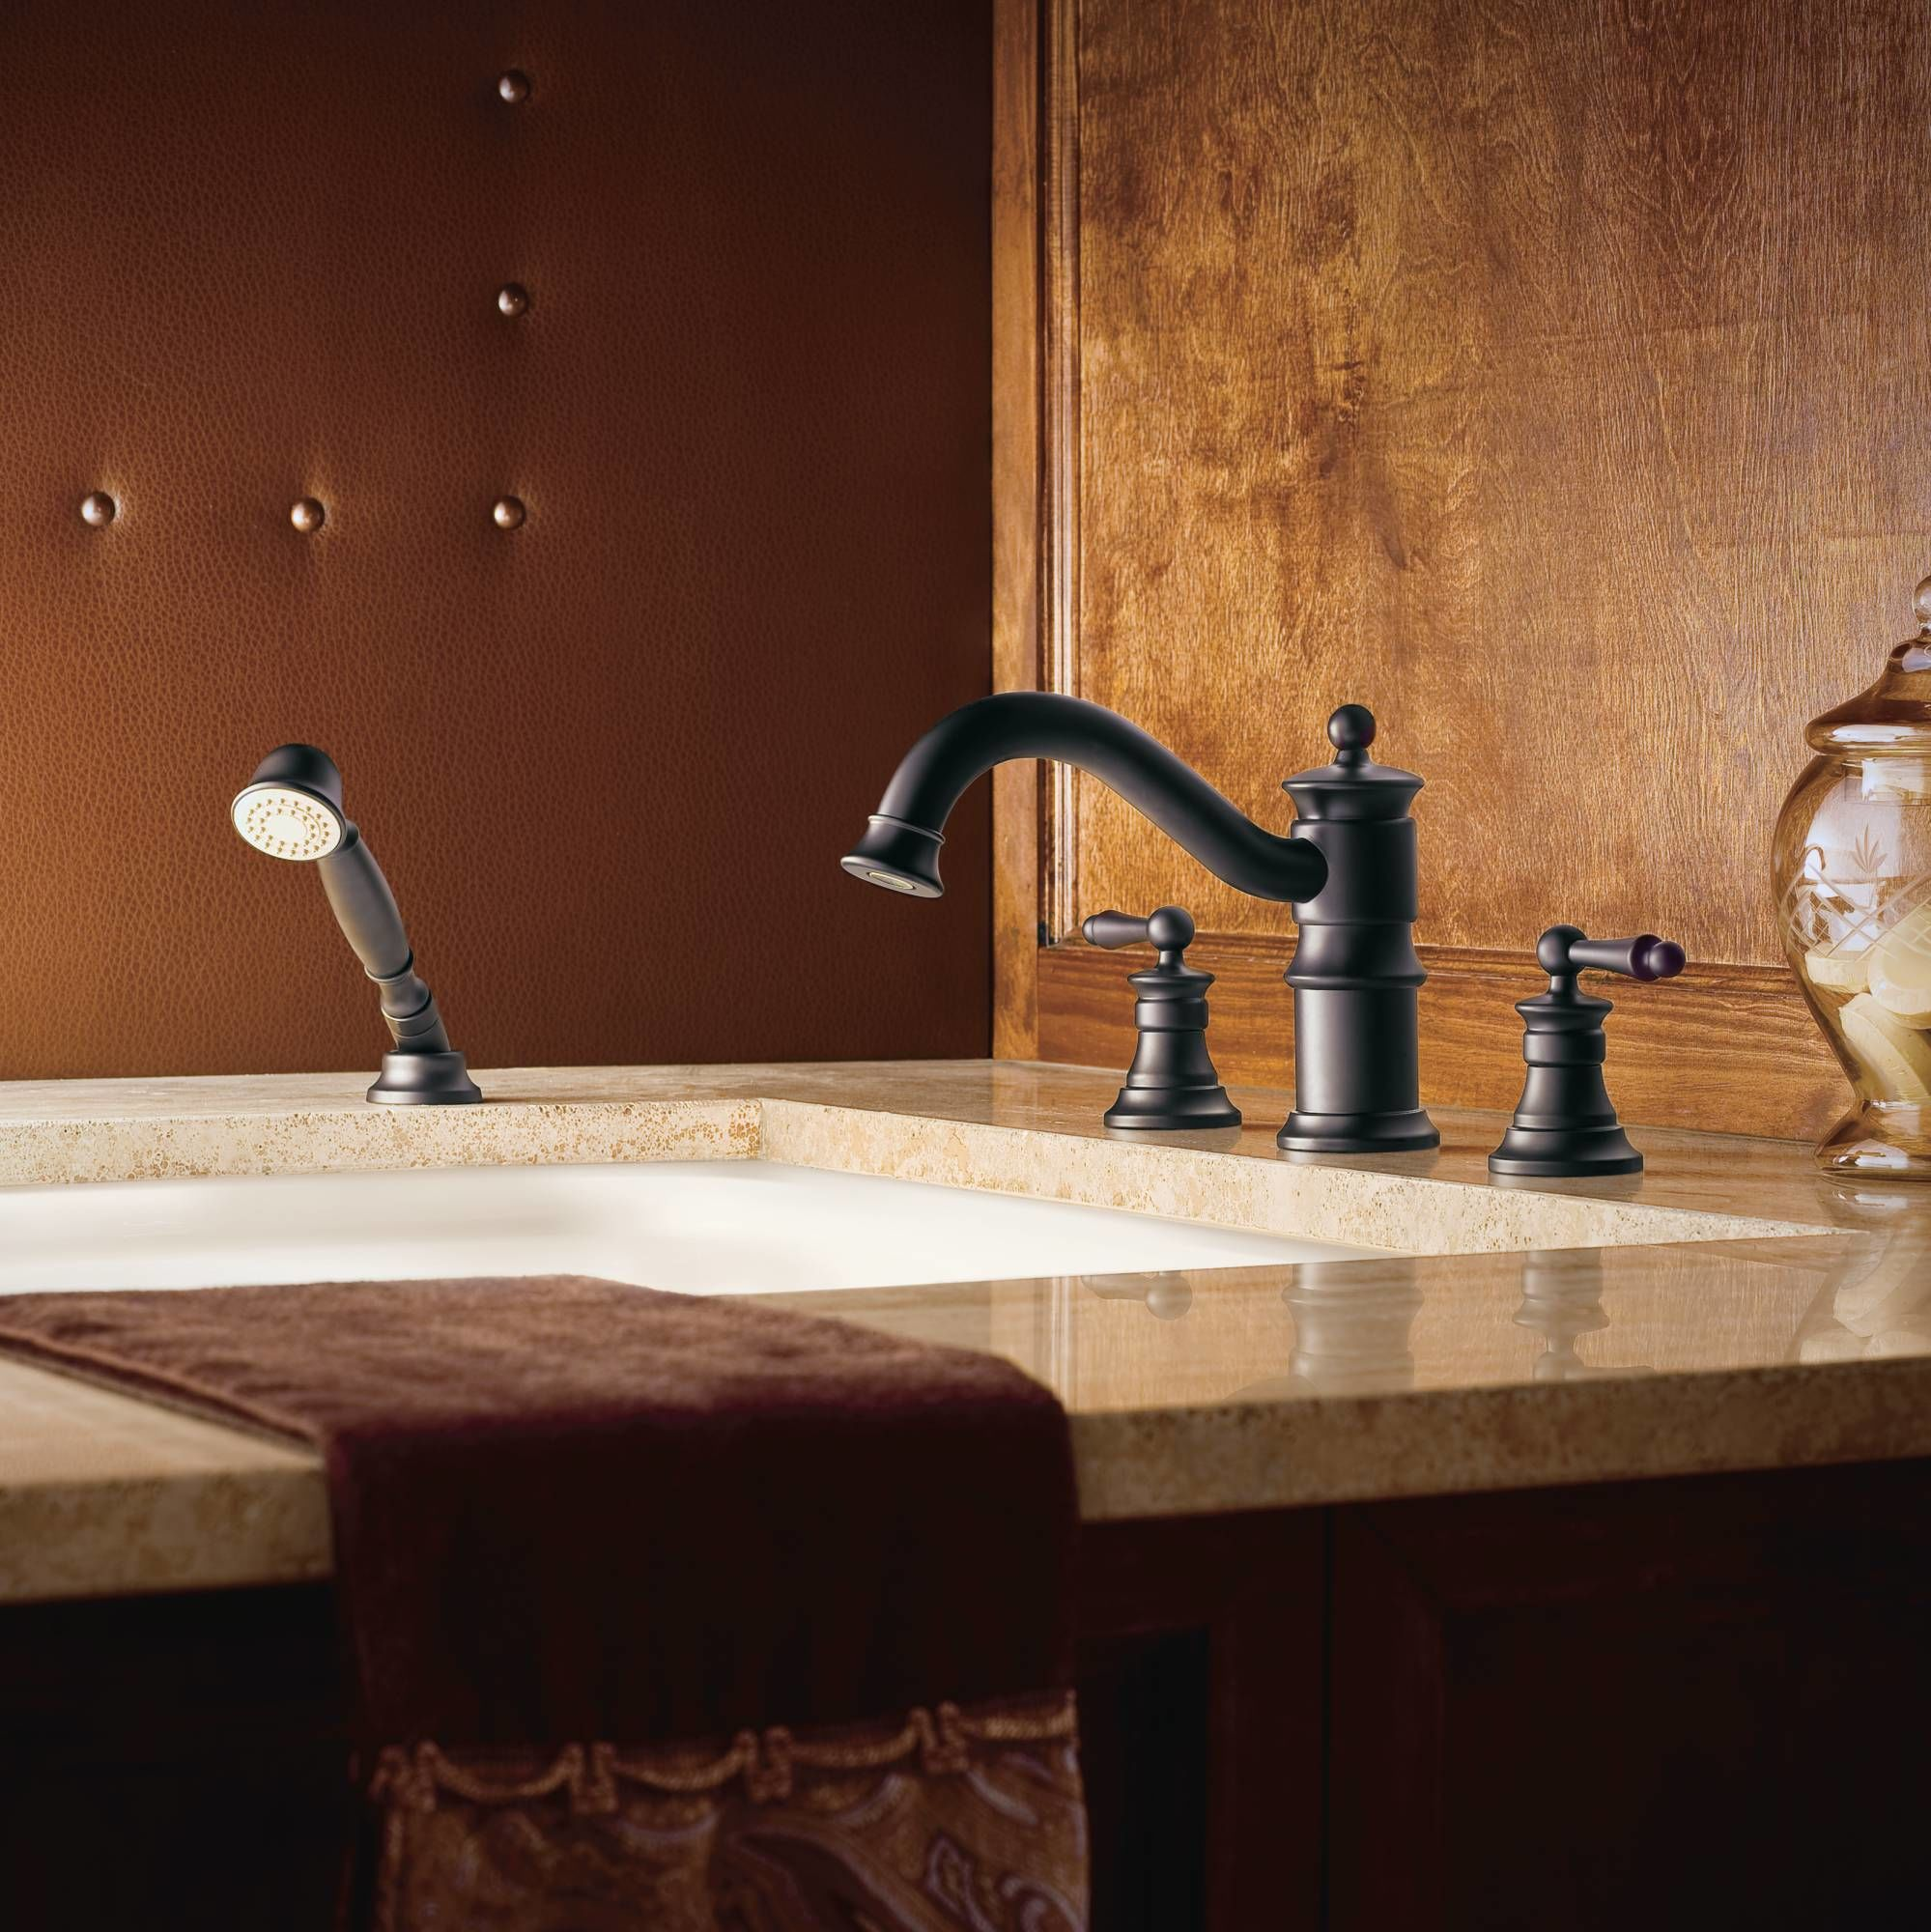 Moen Ts213orb Oil Rubbed Bronze Deck Mounted Roman Tub Faucet Trim With Personal Hand Shower And Built In Diverter From The Waterhill Collection Less